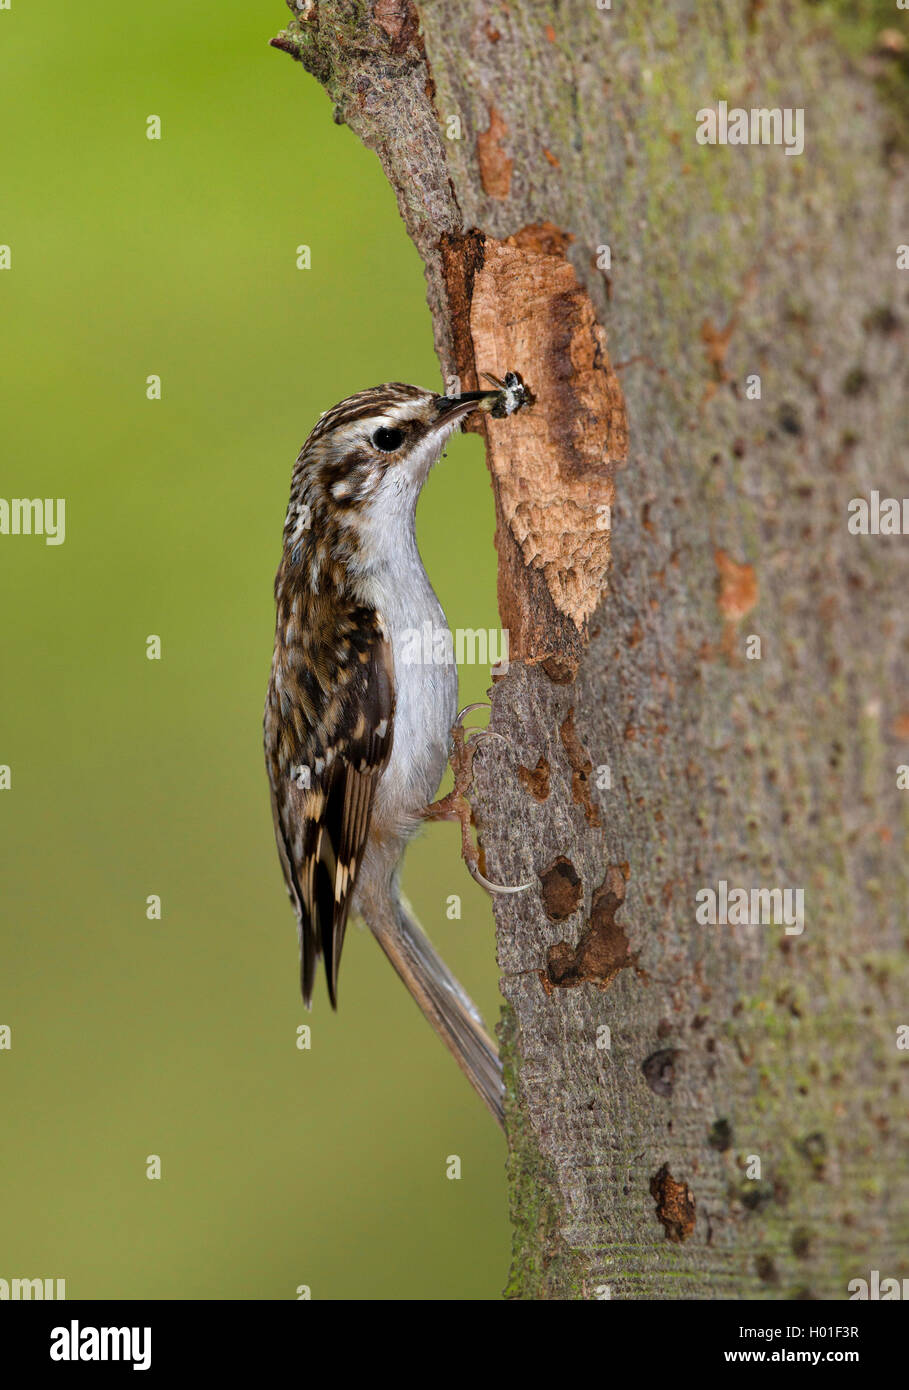 common treecreeper (Certhia familiaris), at a nesting hole with an insect in the bill, side view, Germany Stock Photo